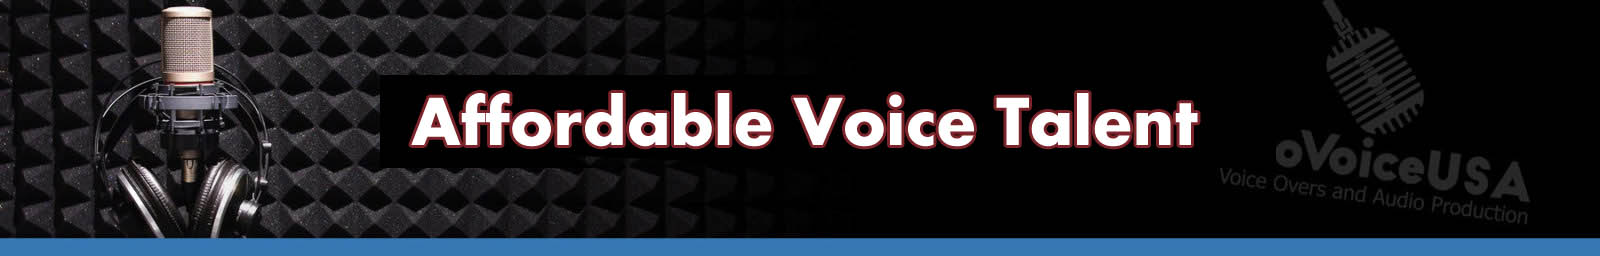 Affordable Voice Talent | American Voice Recording Service | ProVoice USA